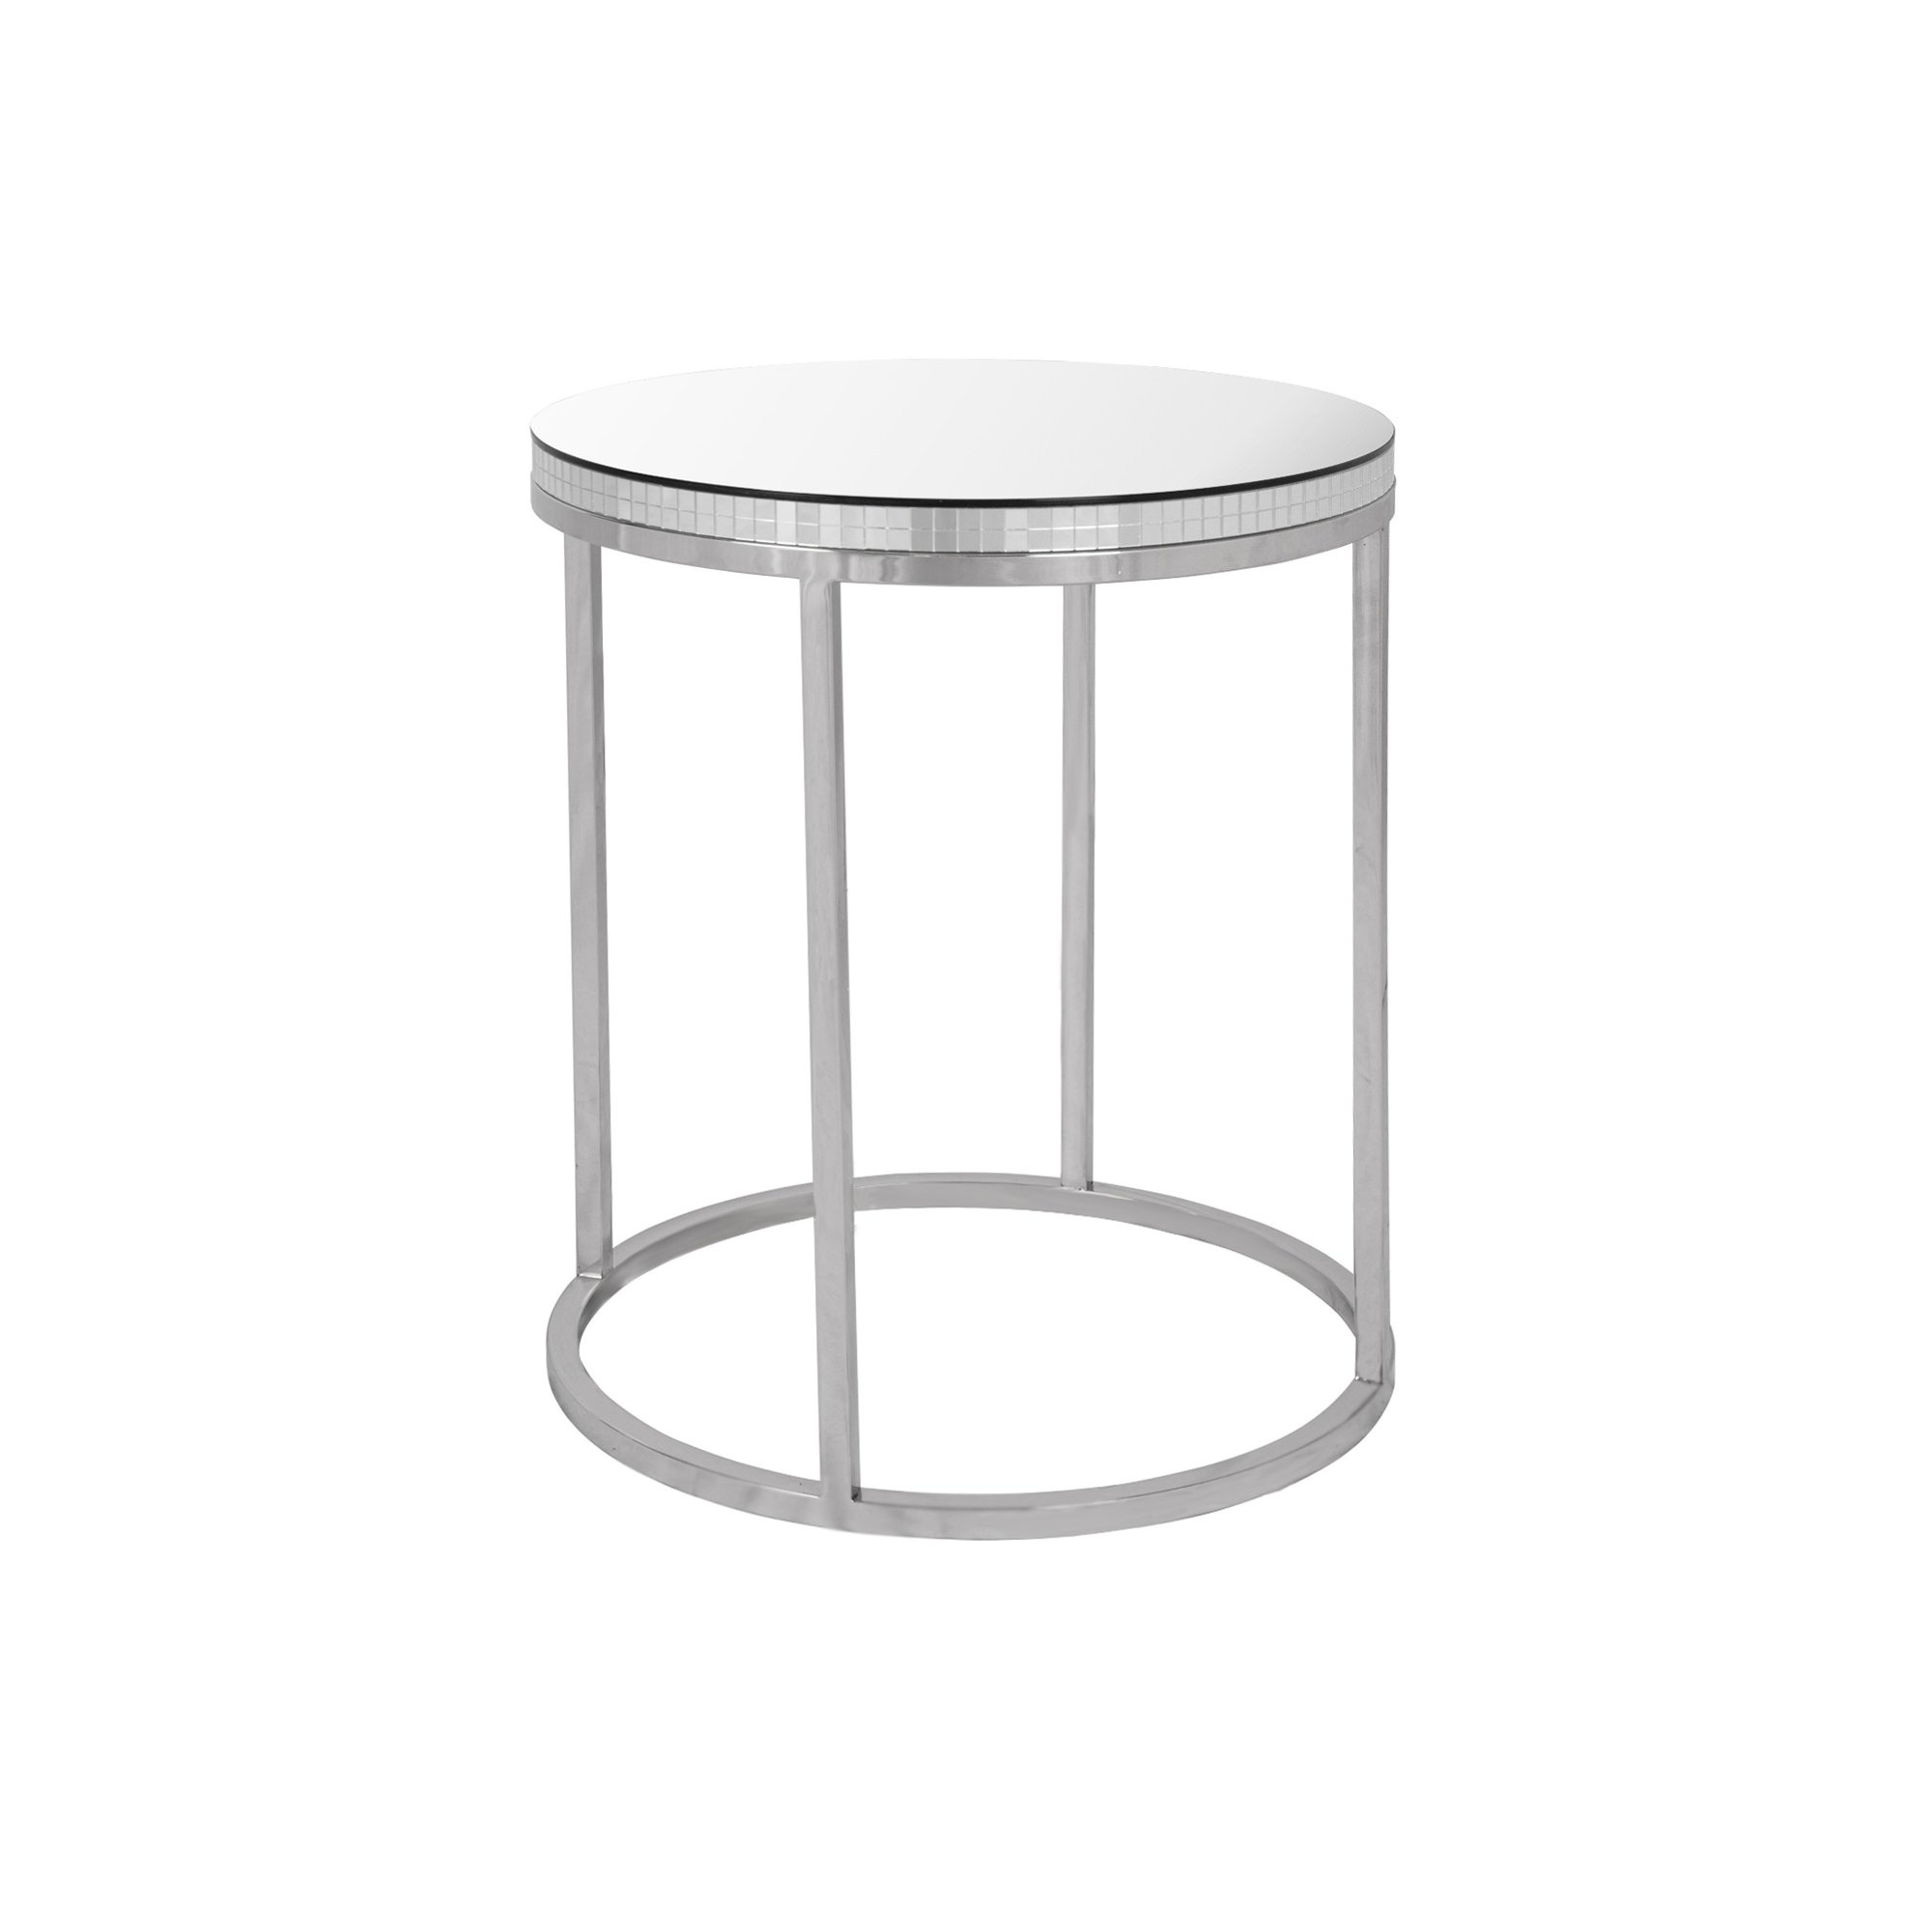 acrylic accent table free shipping today black inch legs outdoor patio umbrella stands bathroom fittings target kitchen cart round marble coffee cherry wood furniture bistro and